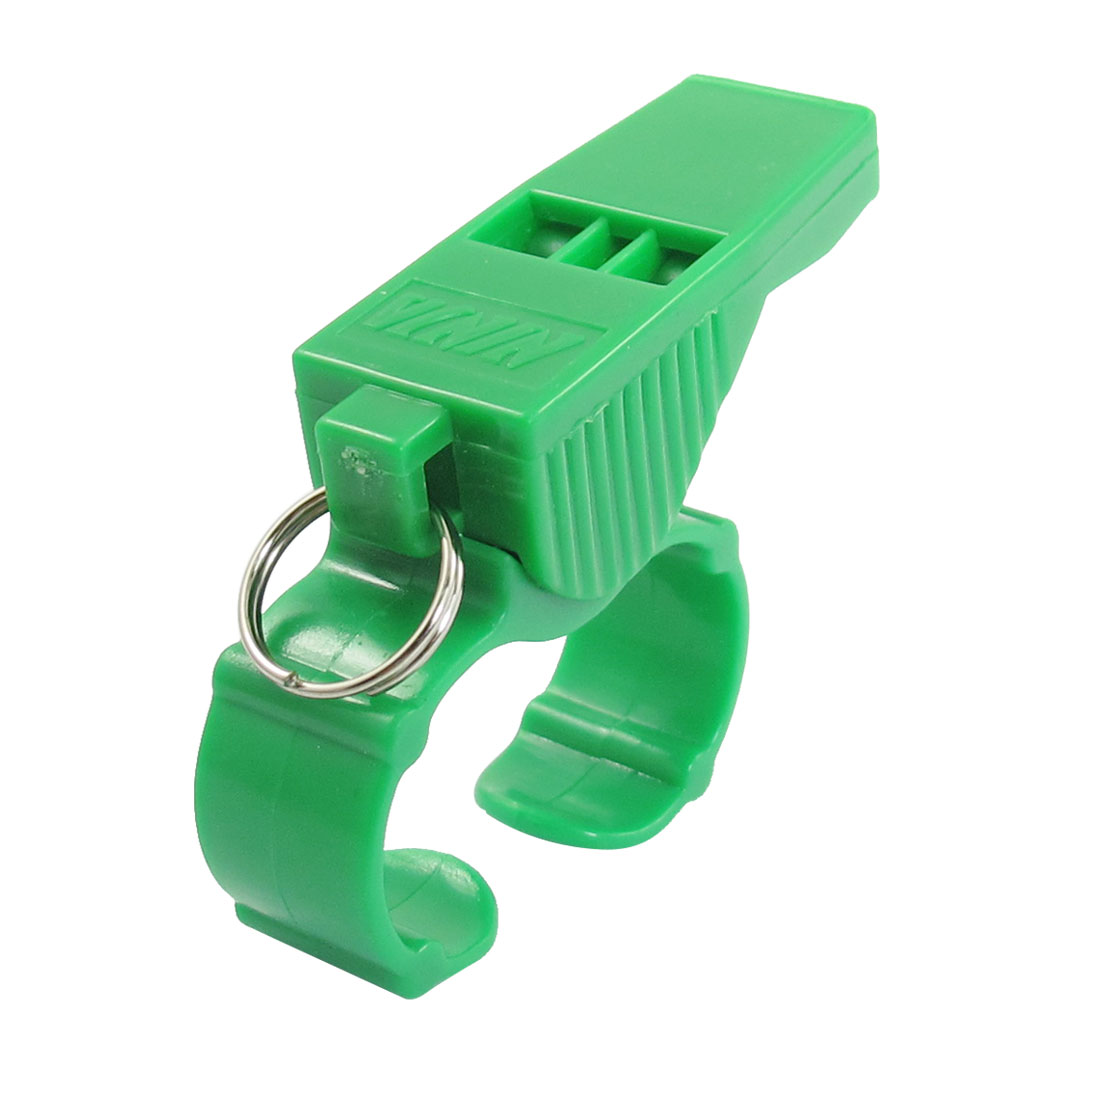 Referee Green Plastic Shell Pealess Finger Grip Whistle Toy